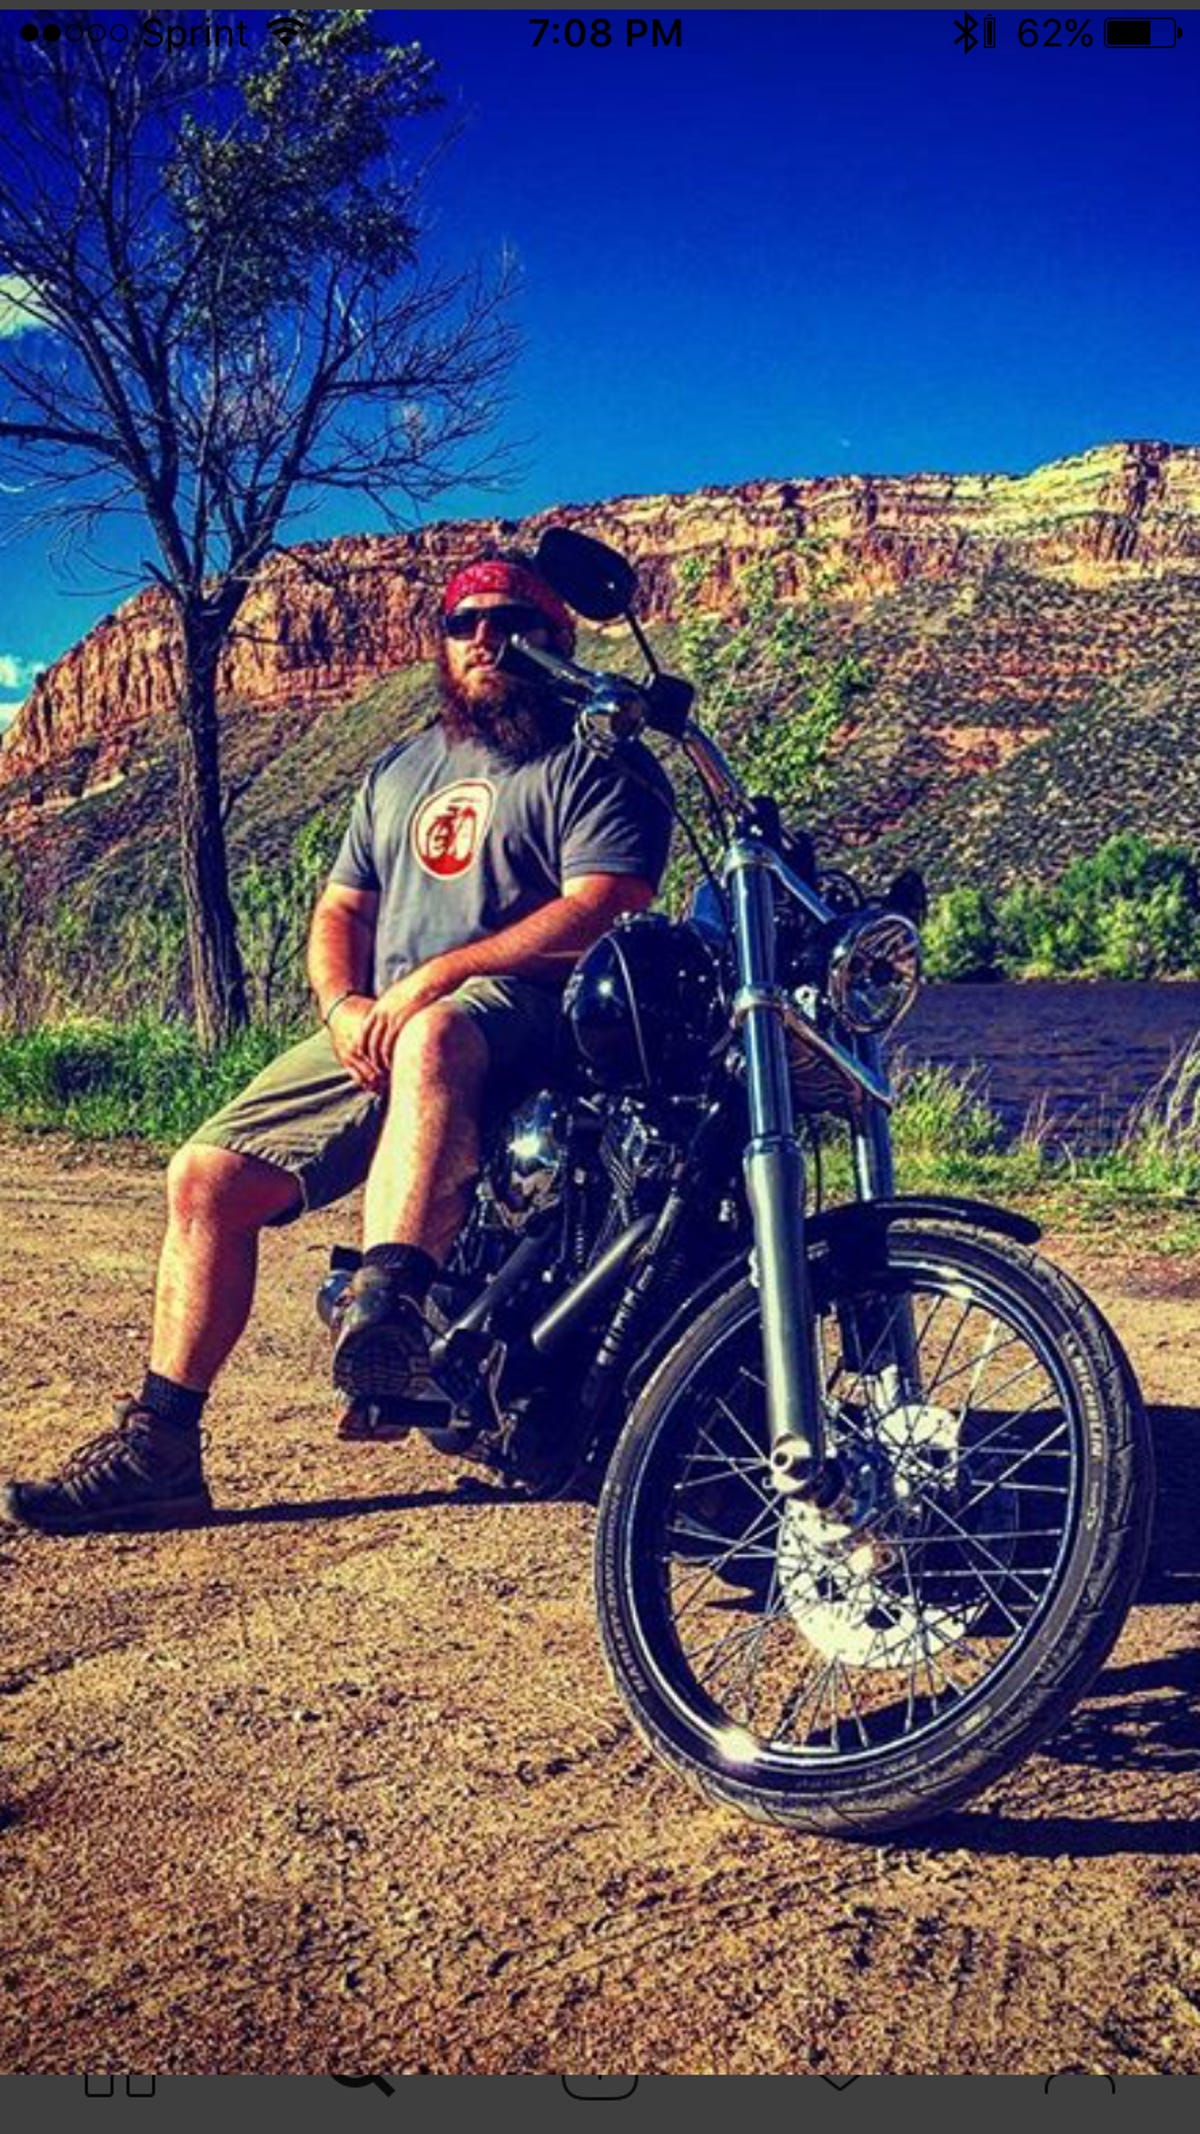 Motorcyclist remembered after fatal crash with drunk driver